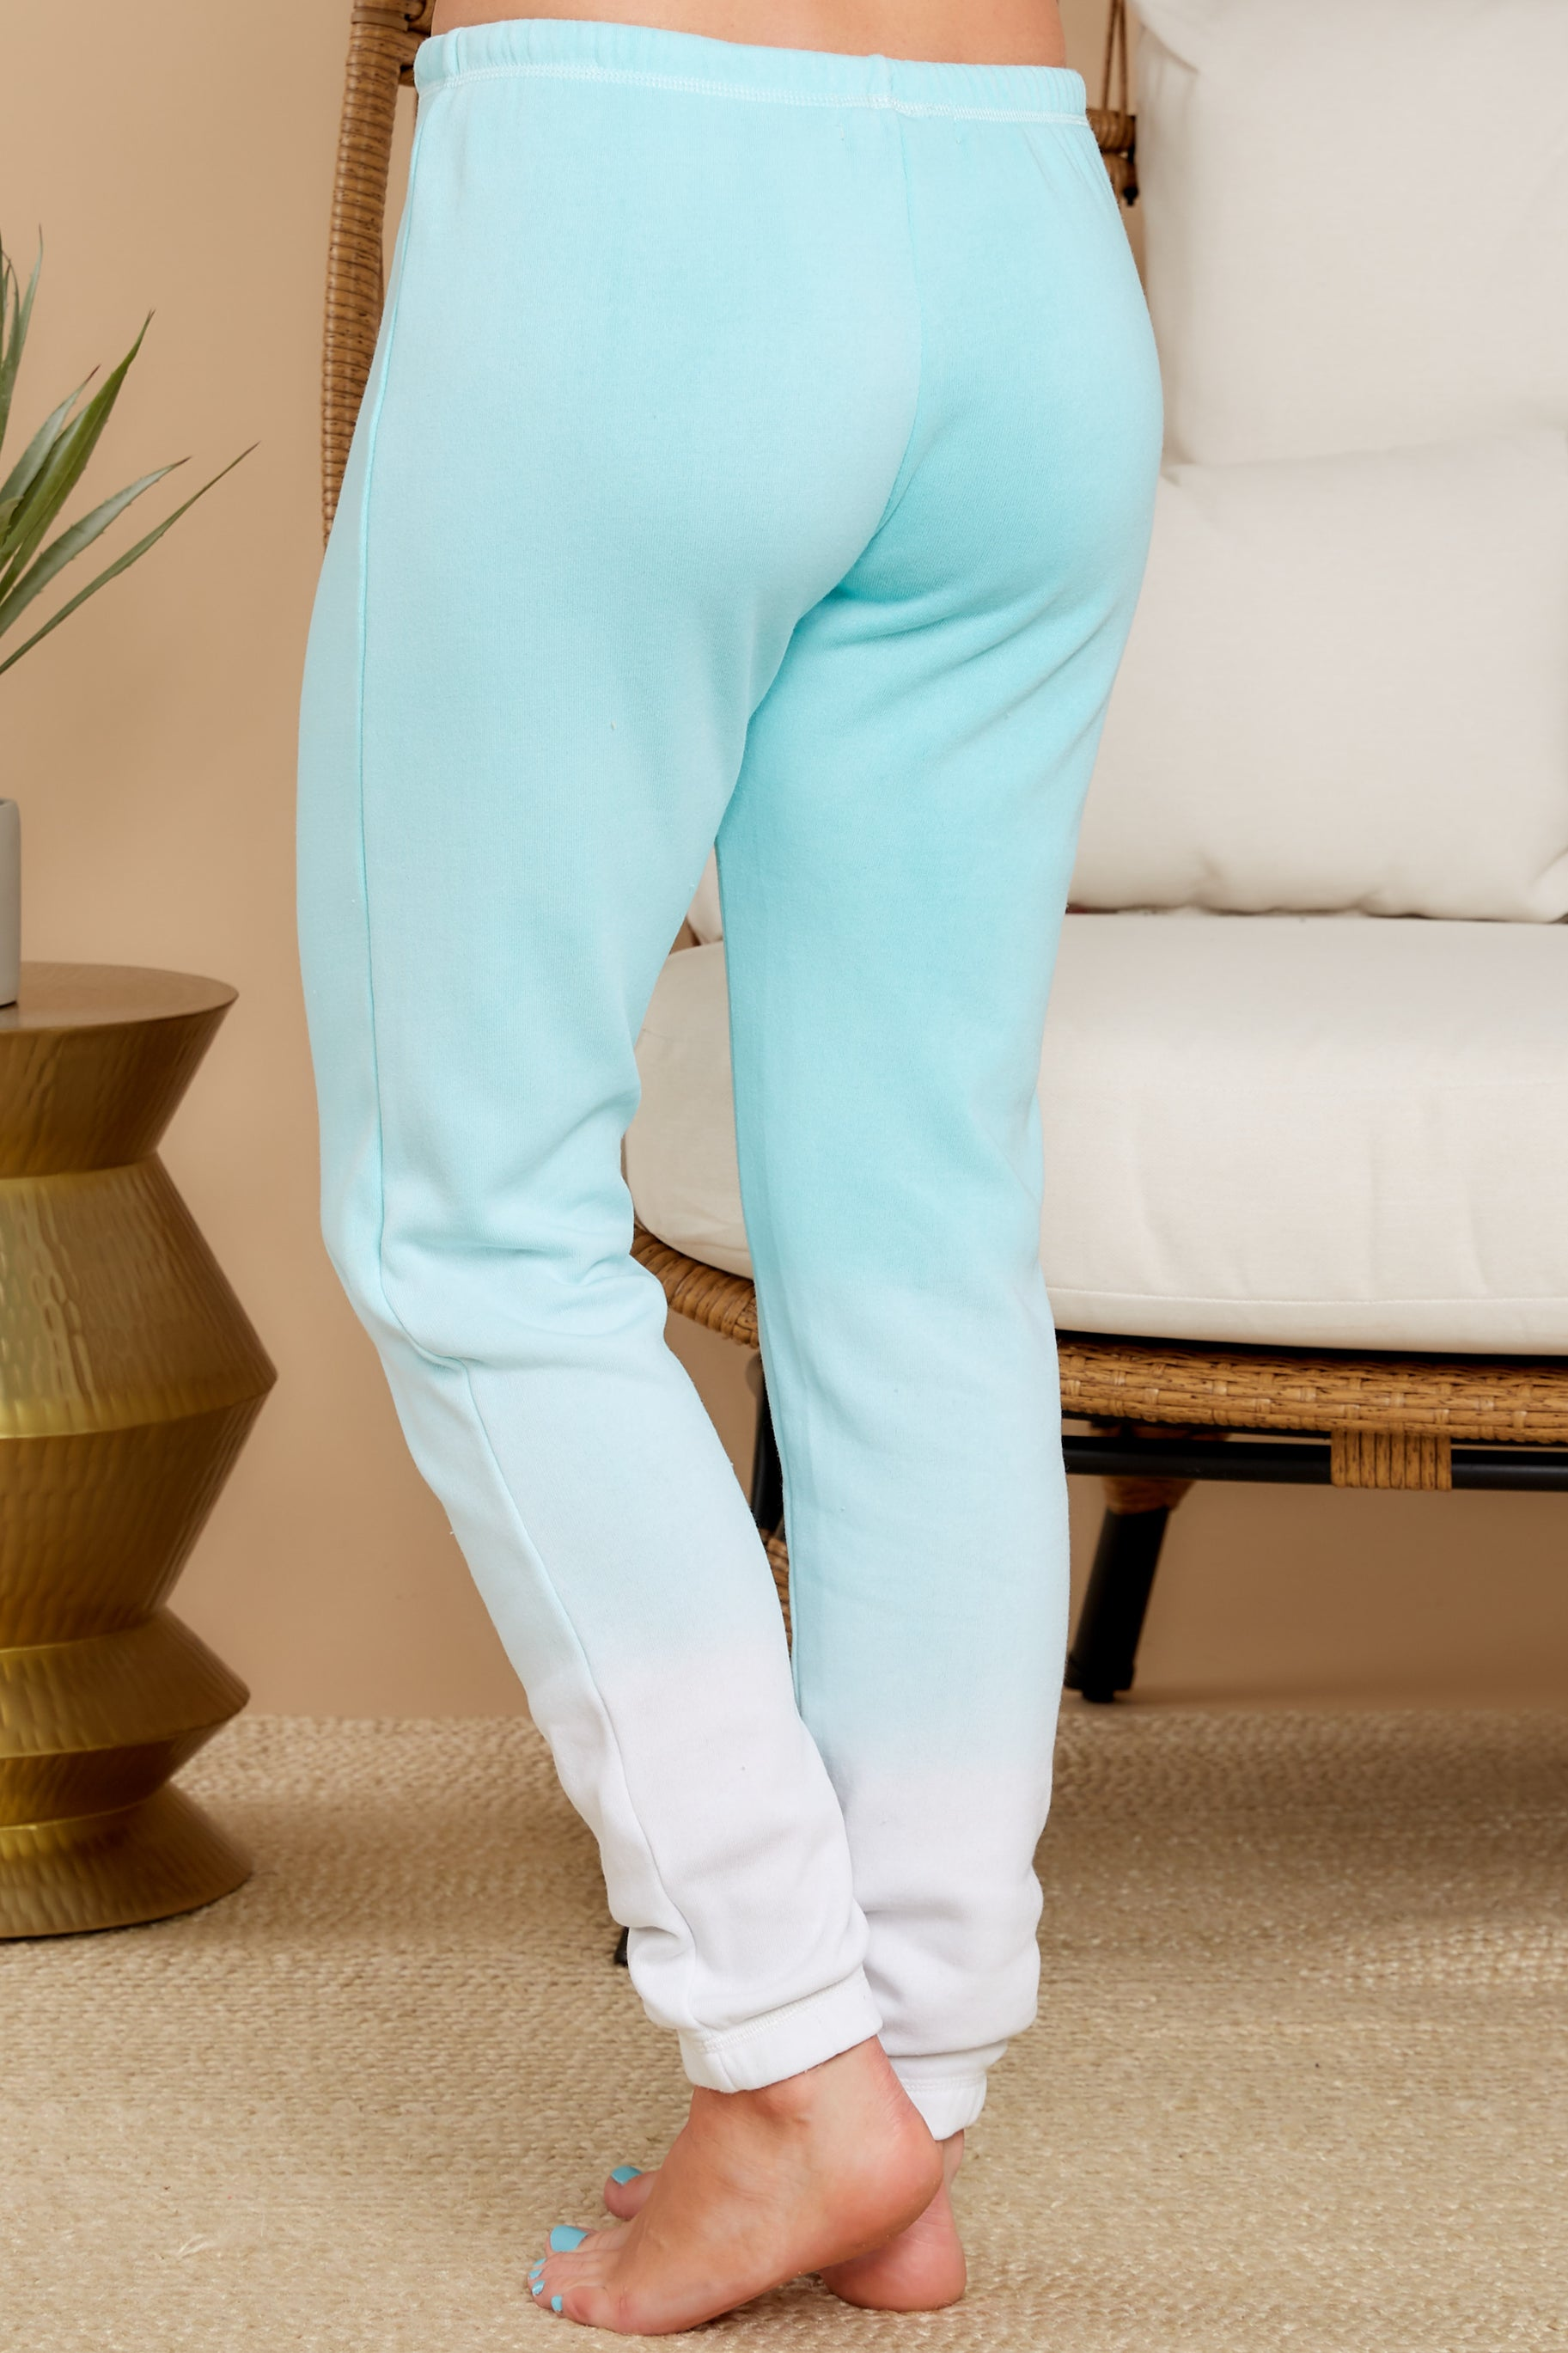 3 Feels Like Heaven Atlantis Blue Ombre Joggers at reddress.com